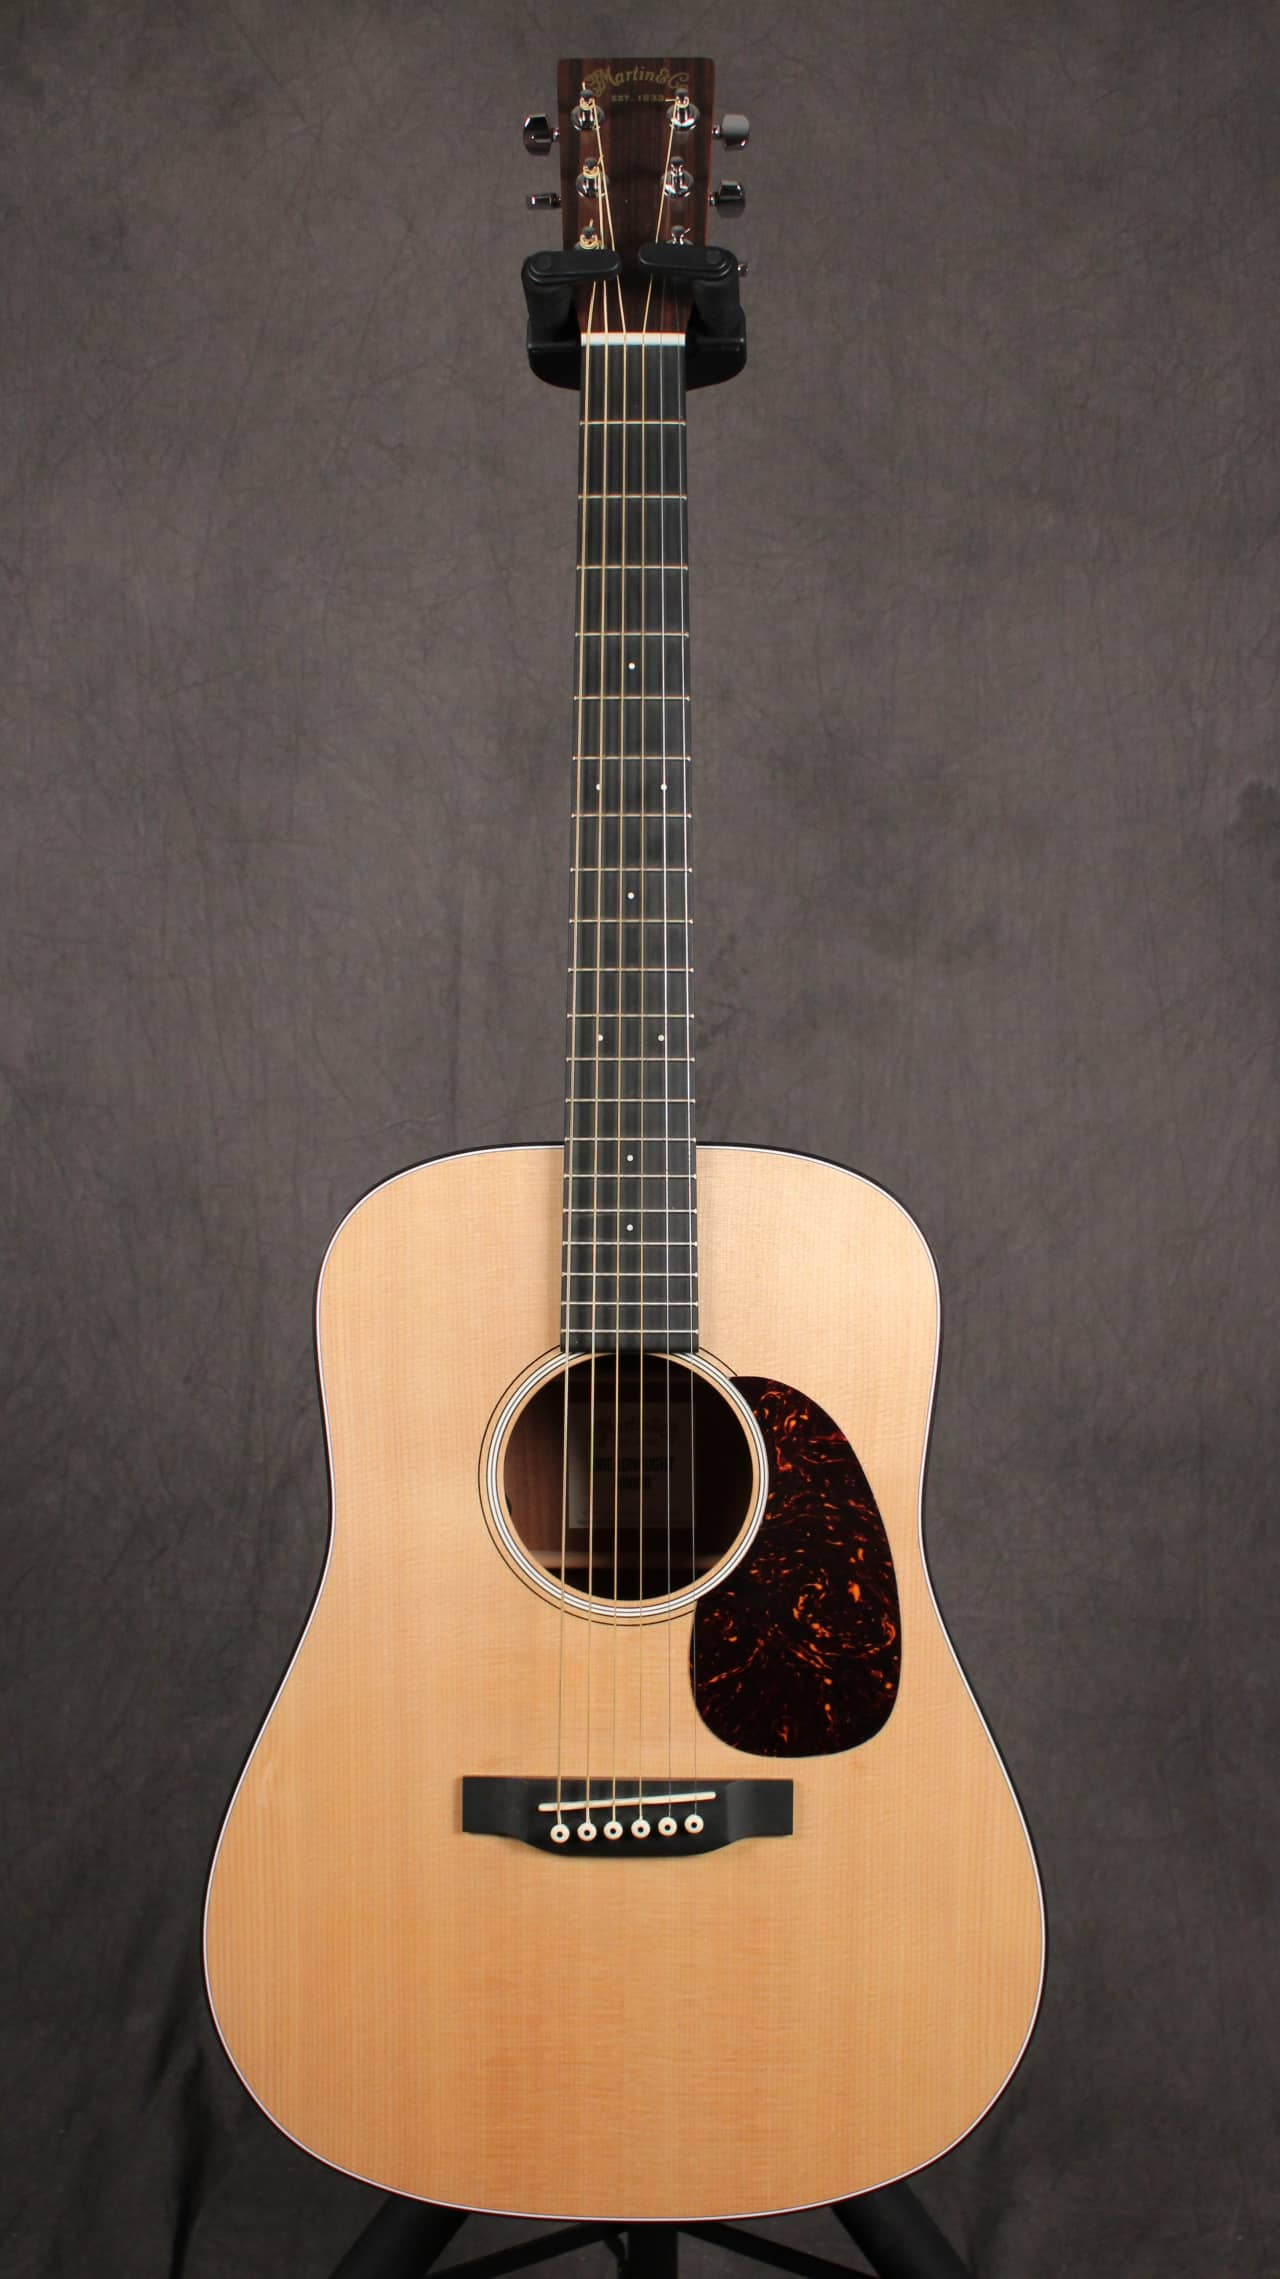 martin dreadnought junior acoustic guitar swing city music reverb. Black Bedroom Furniture Sets. Home Design Ideas